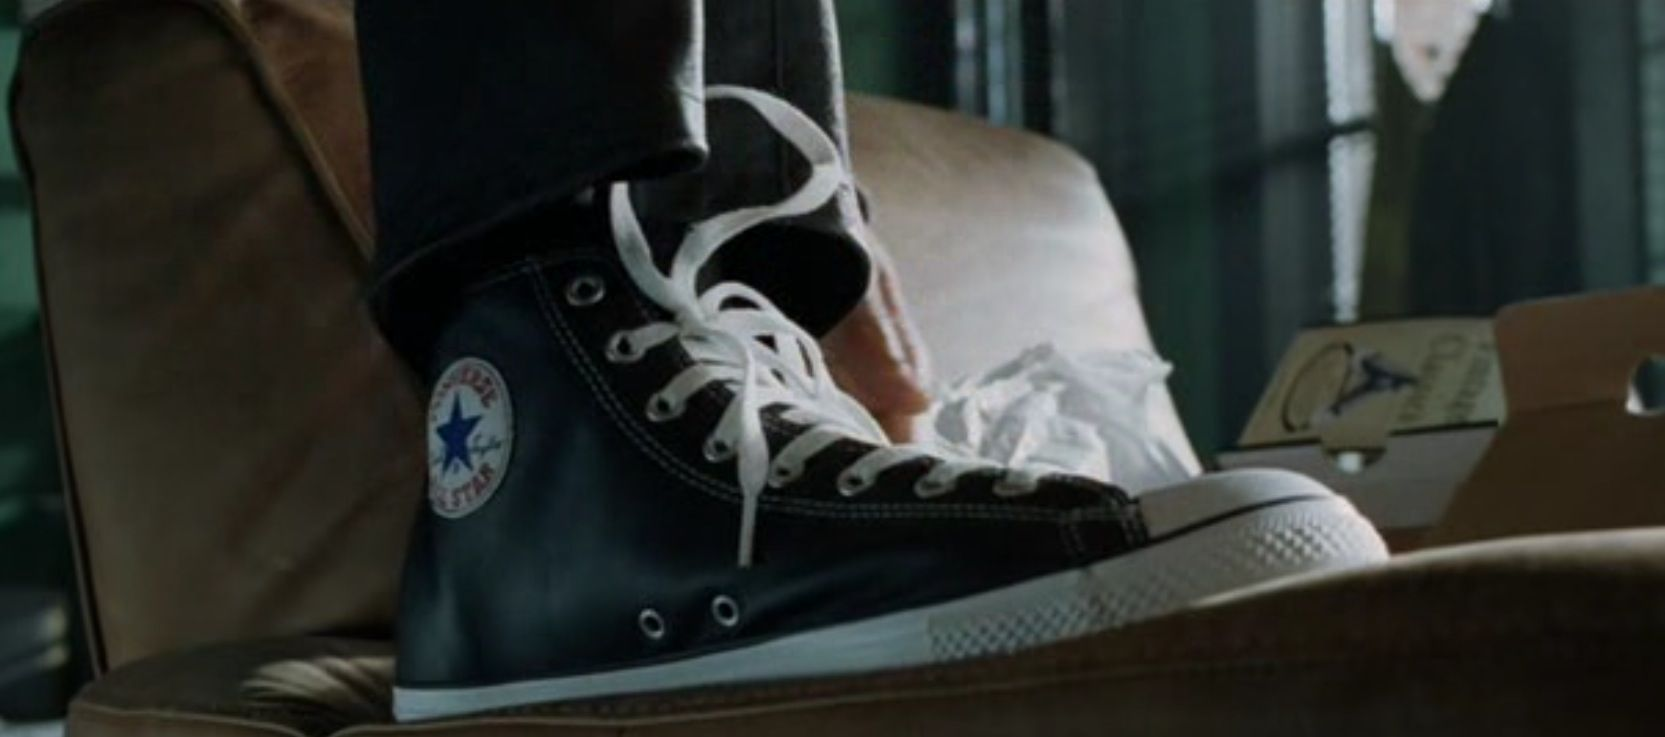 d04a809bddc090 Converse Chuck Taylor All Star shoes worn by Will Smith in I